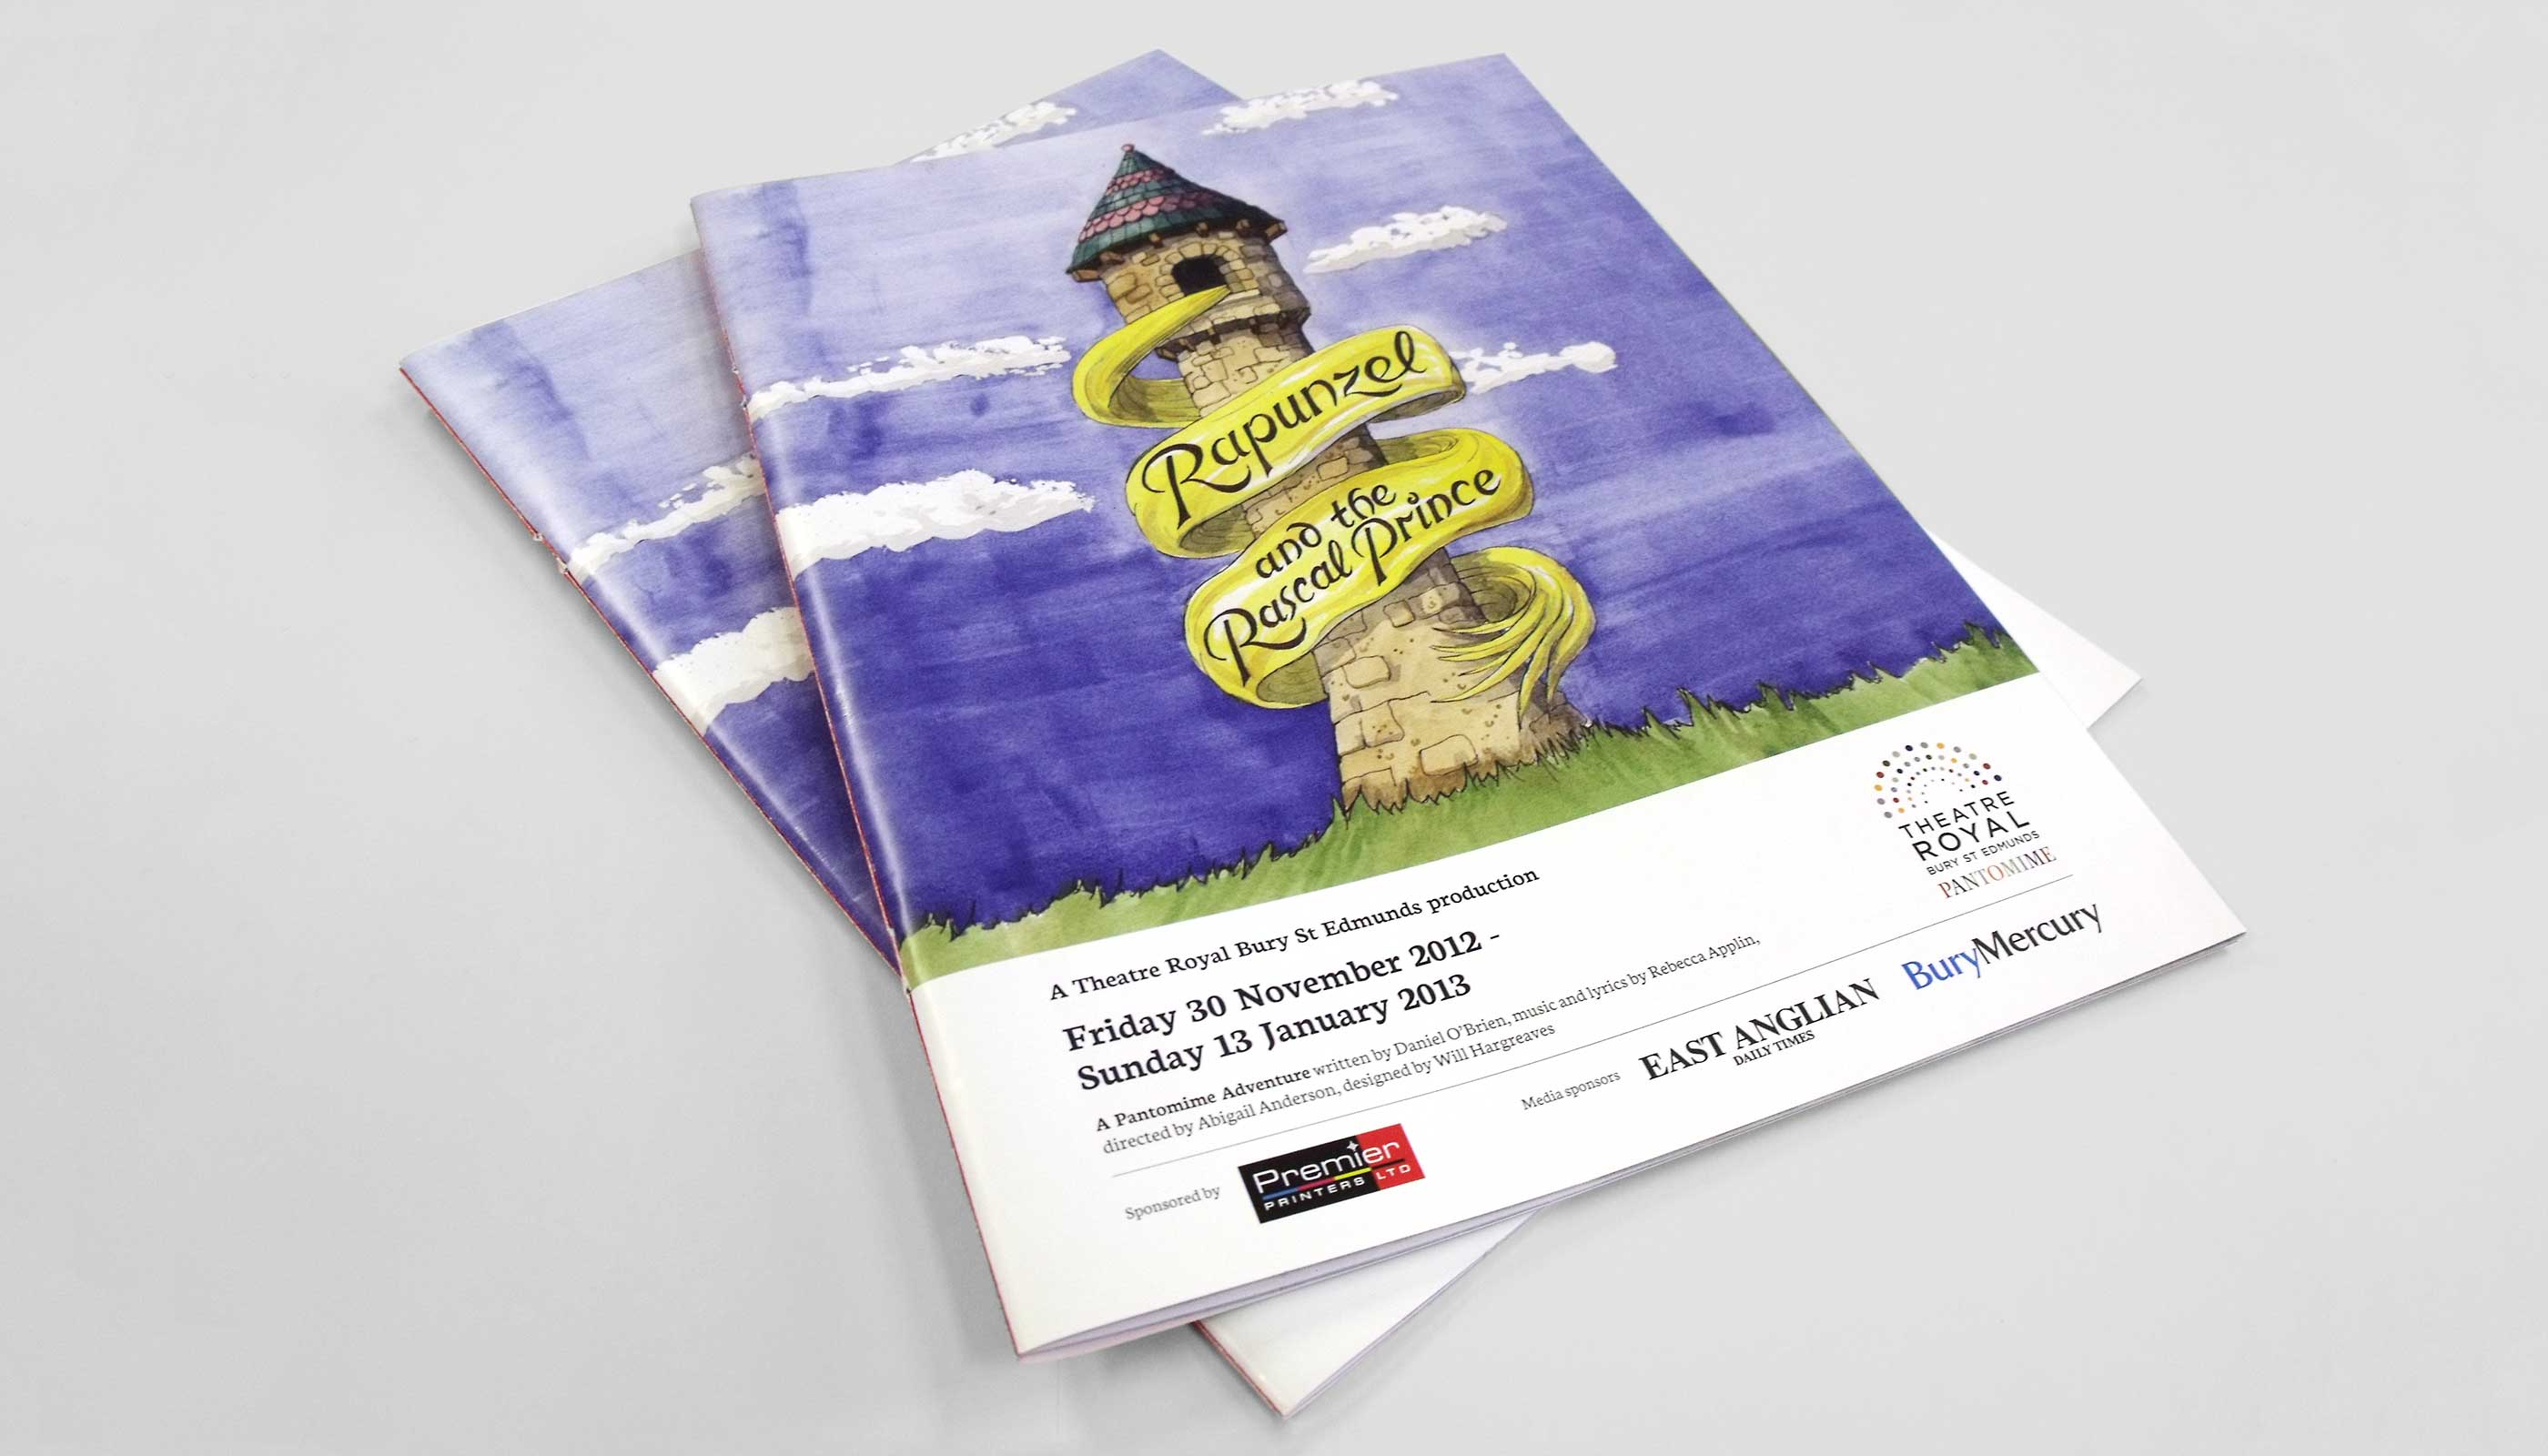 Pantomime programme design for Theatre Royal in Bury St Edmunds, Suffolk.